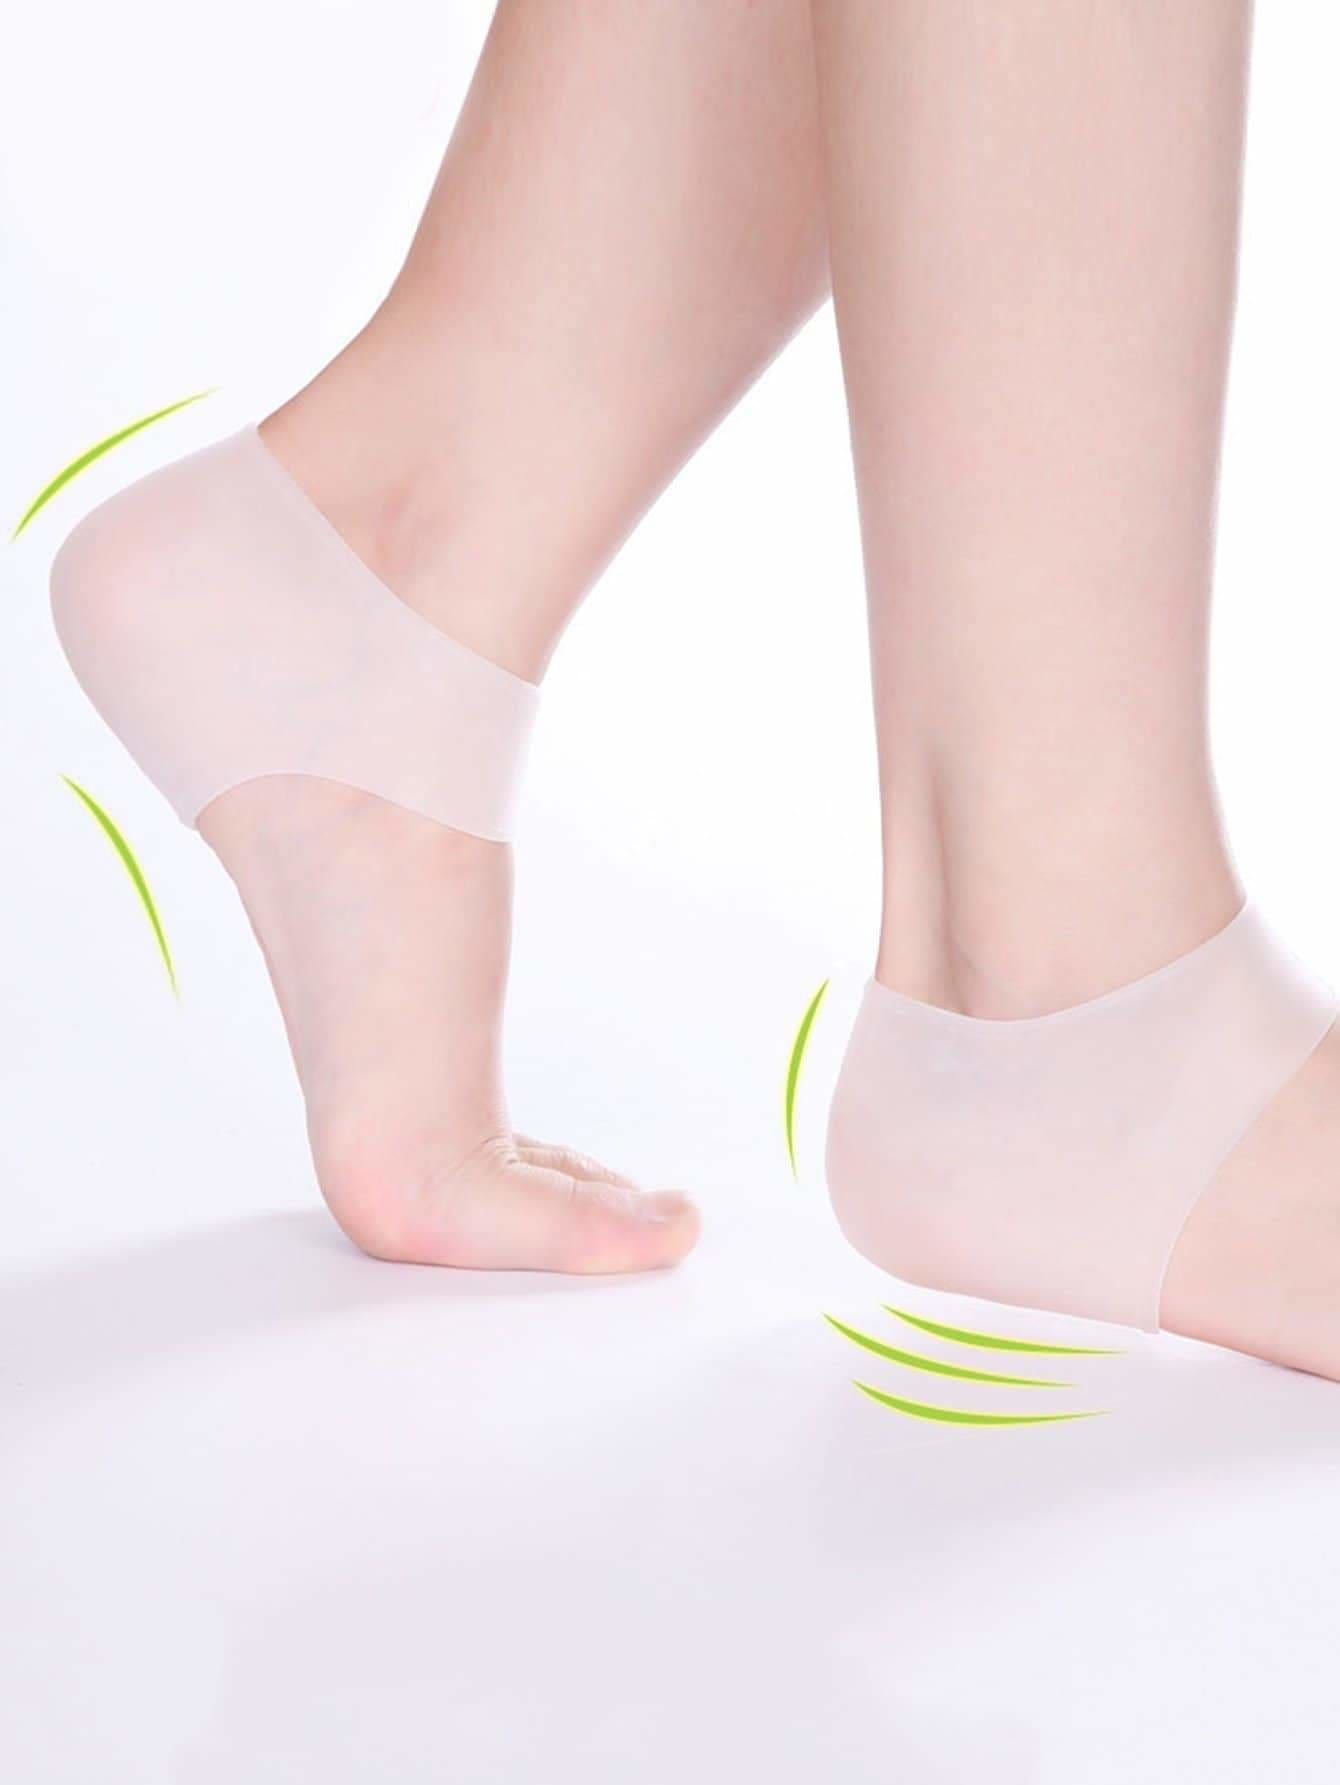 Silicone Gel Heel Protector 1Pair - Personal Care